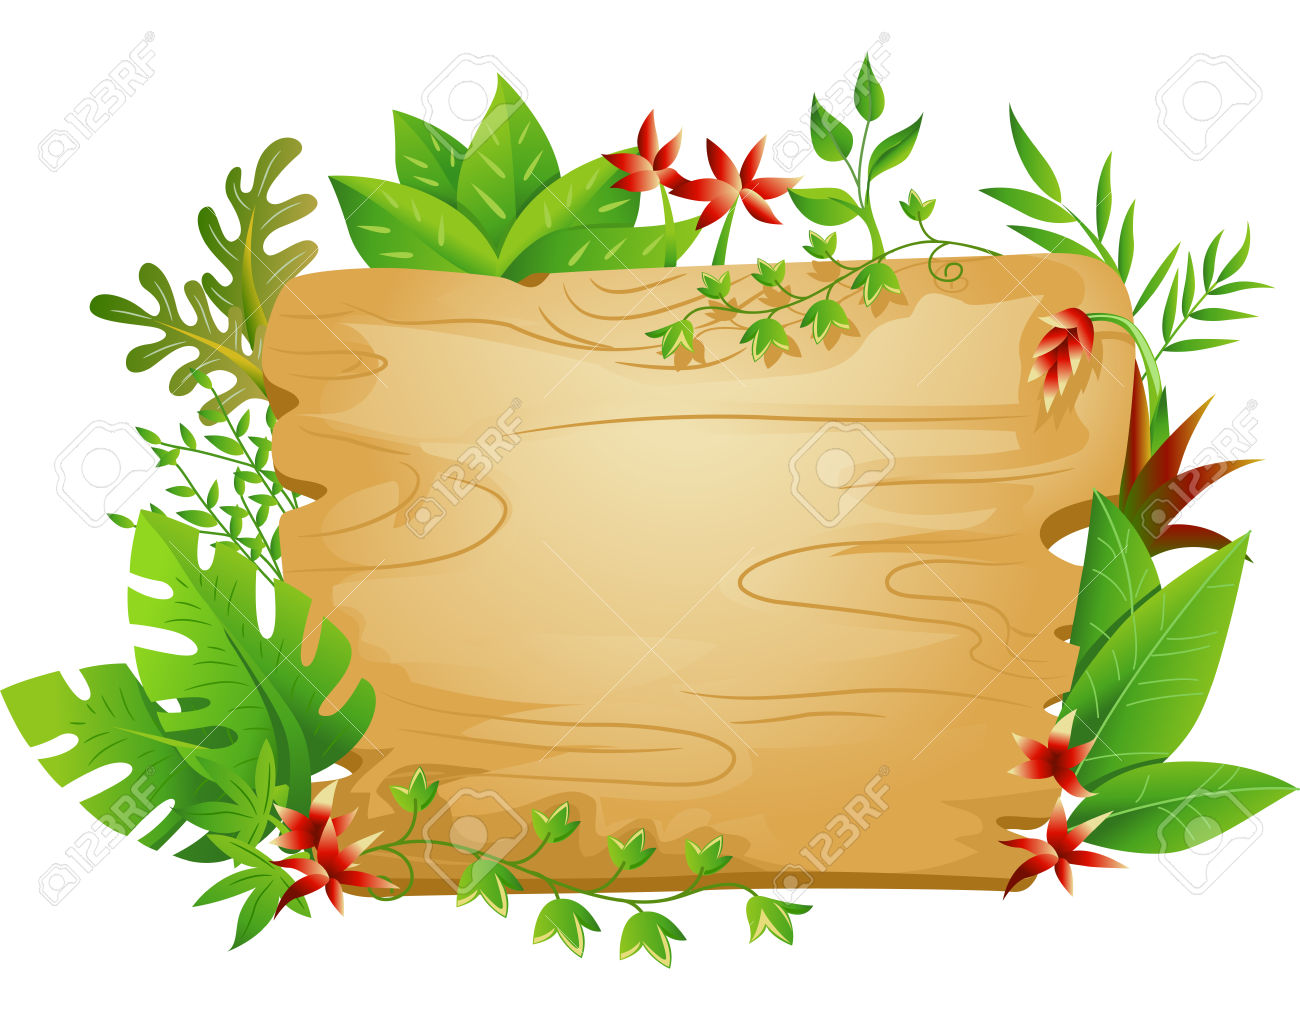 Border Illustration Featuring A Blank Board Surrounded By Jungle.